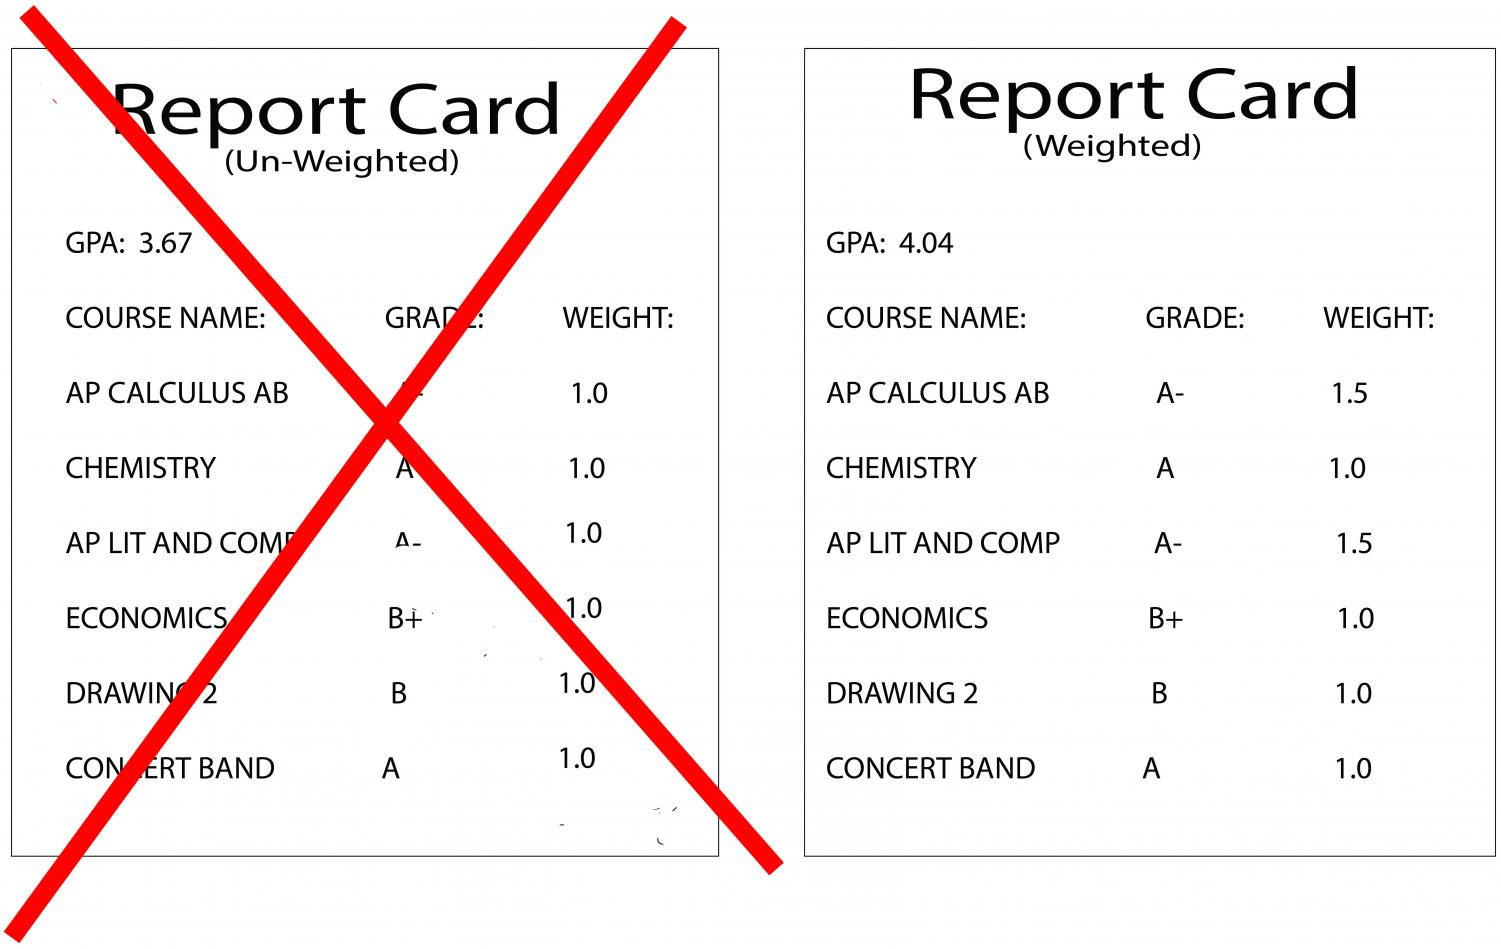 "When comparing the grades received in the same courses under both a weighted grading system and an unweighted grading system, the positive effect on one's GPA using the weighted system is extremely obvious. ""I believe that weighted grading more accurately represents a student's performance because it takes into account the difficulty of classes,"" said senior Miguel Brandao."